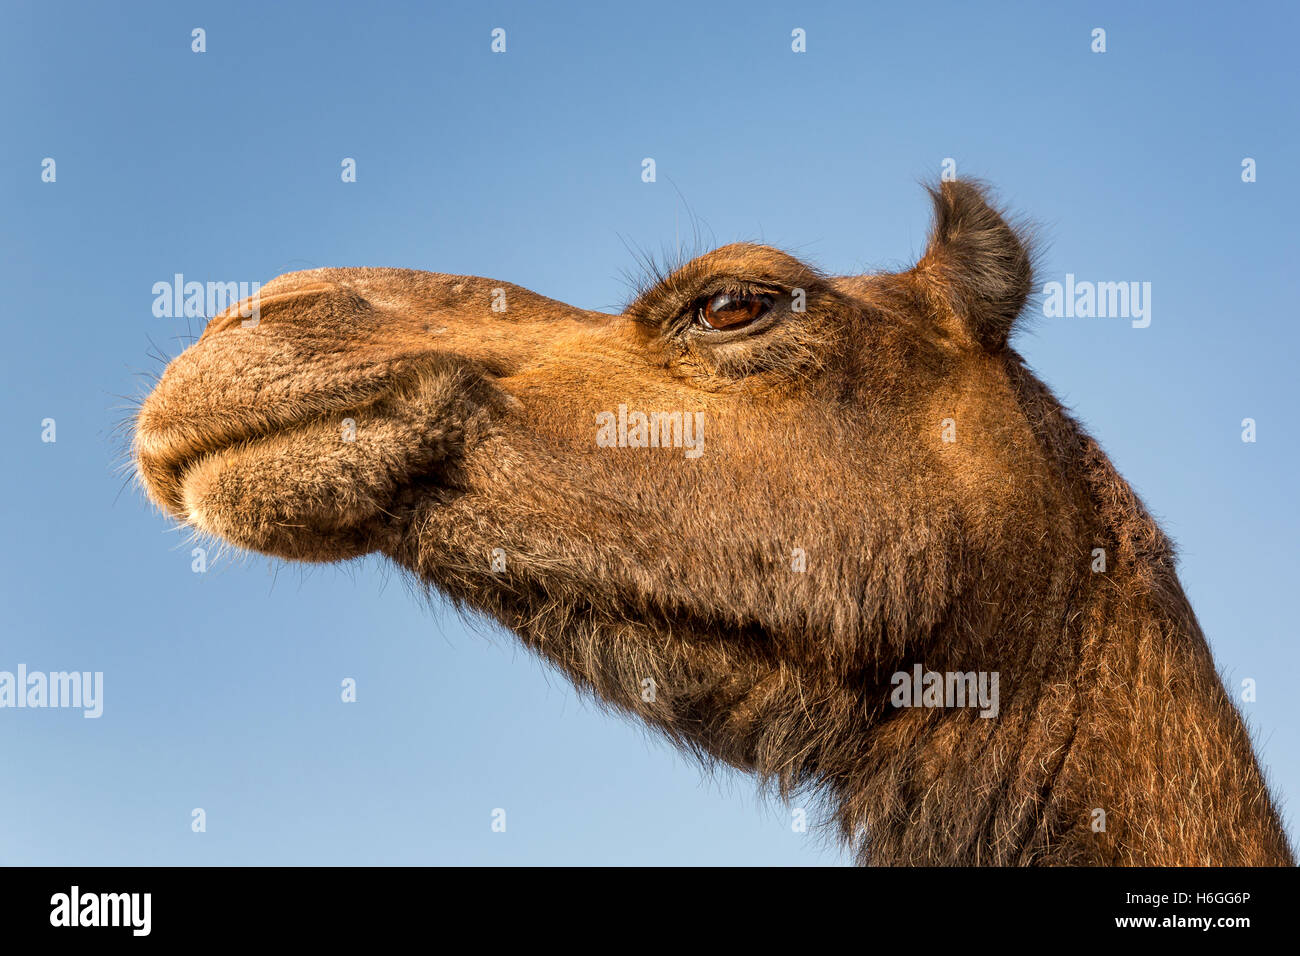 Close up of a Camel (Camelus), India - Stock Image